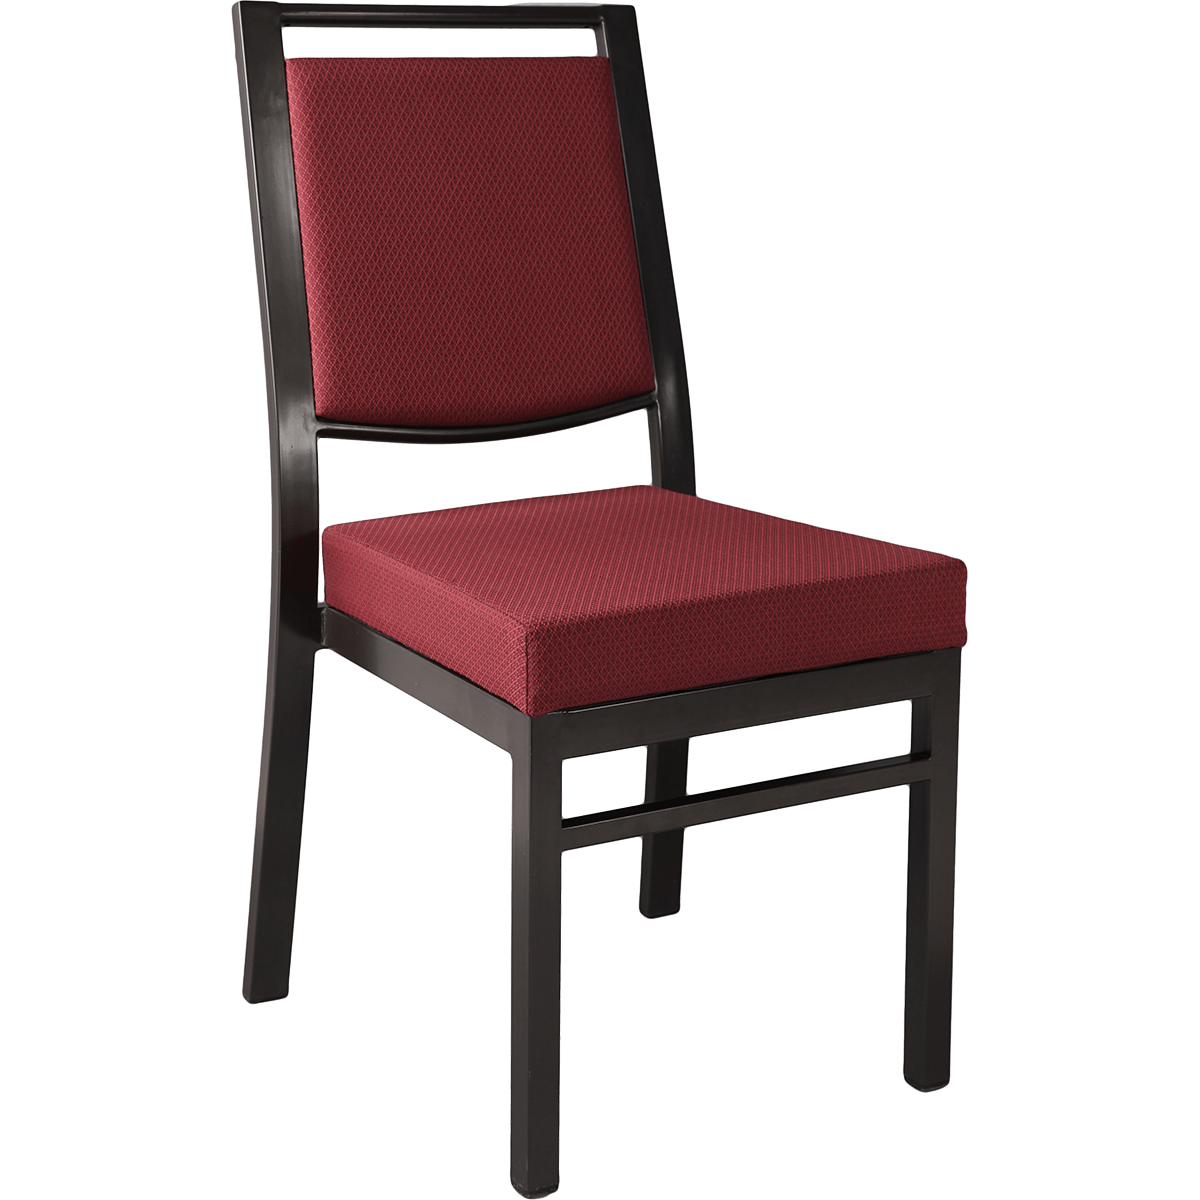 stacking chairs small bedroom chair uk metal square back